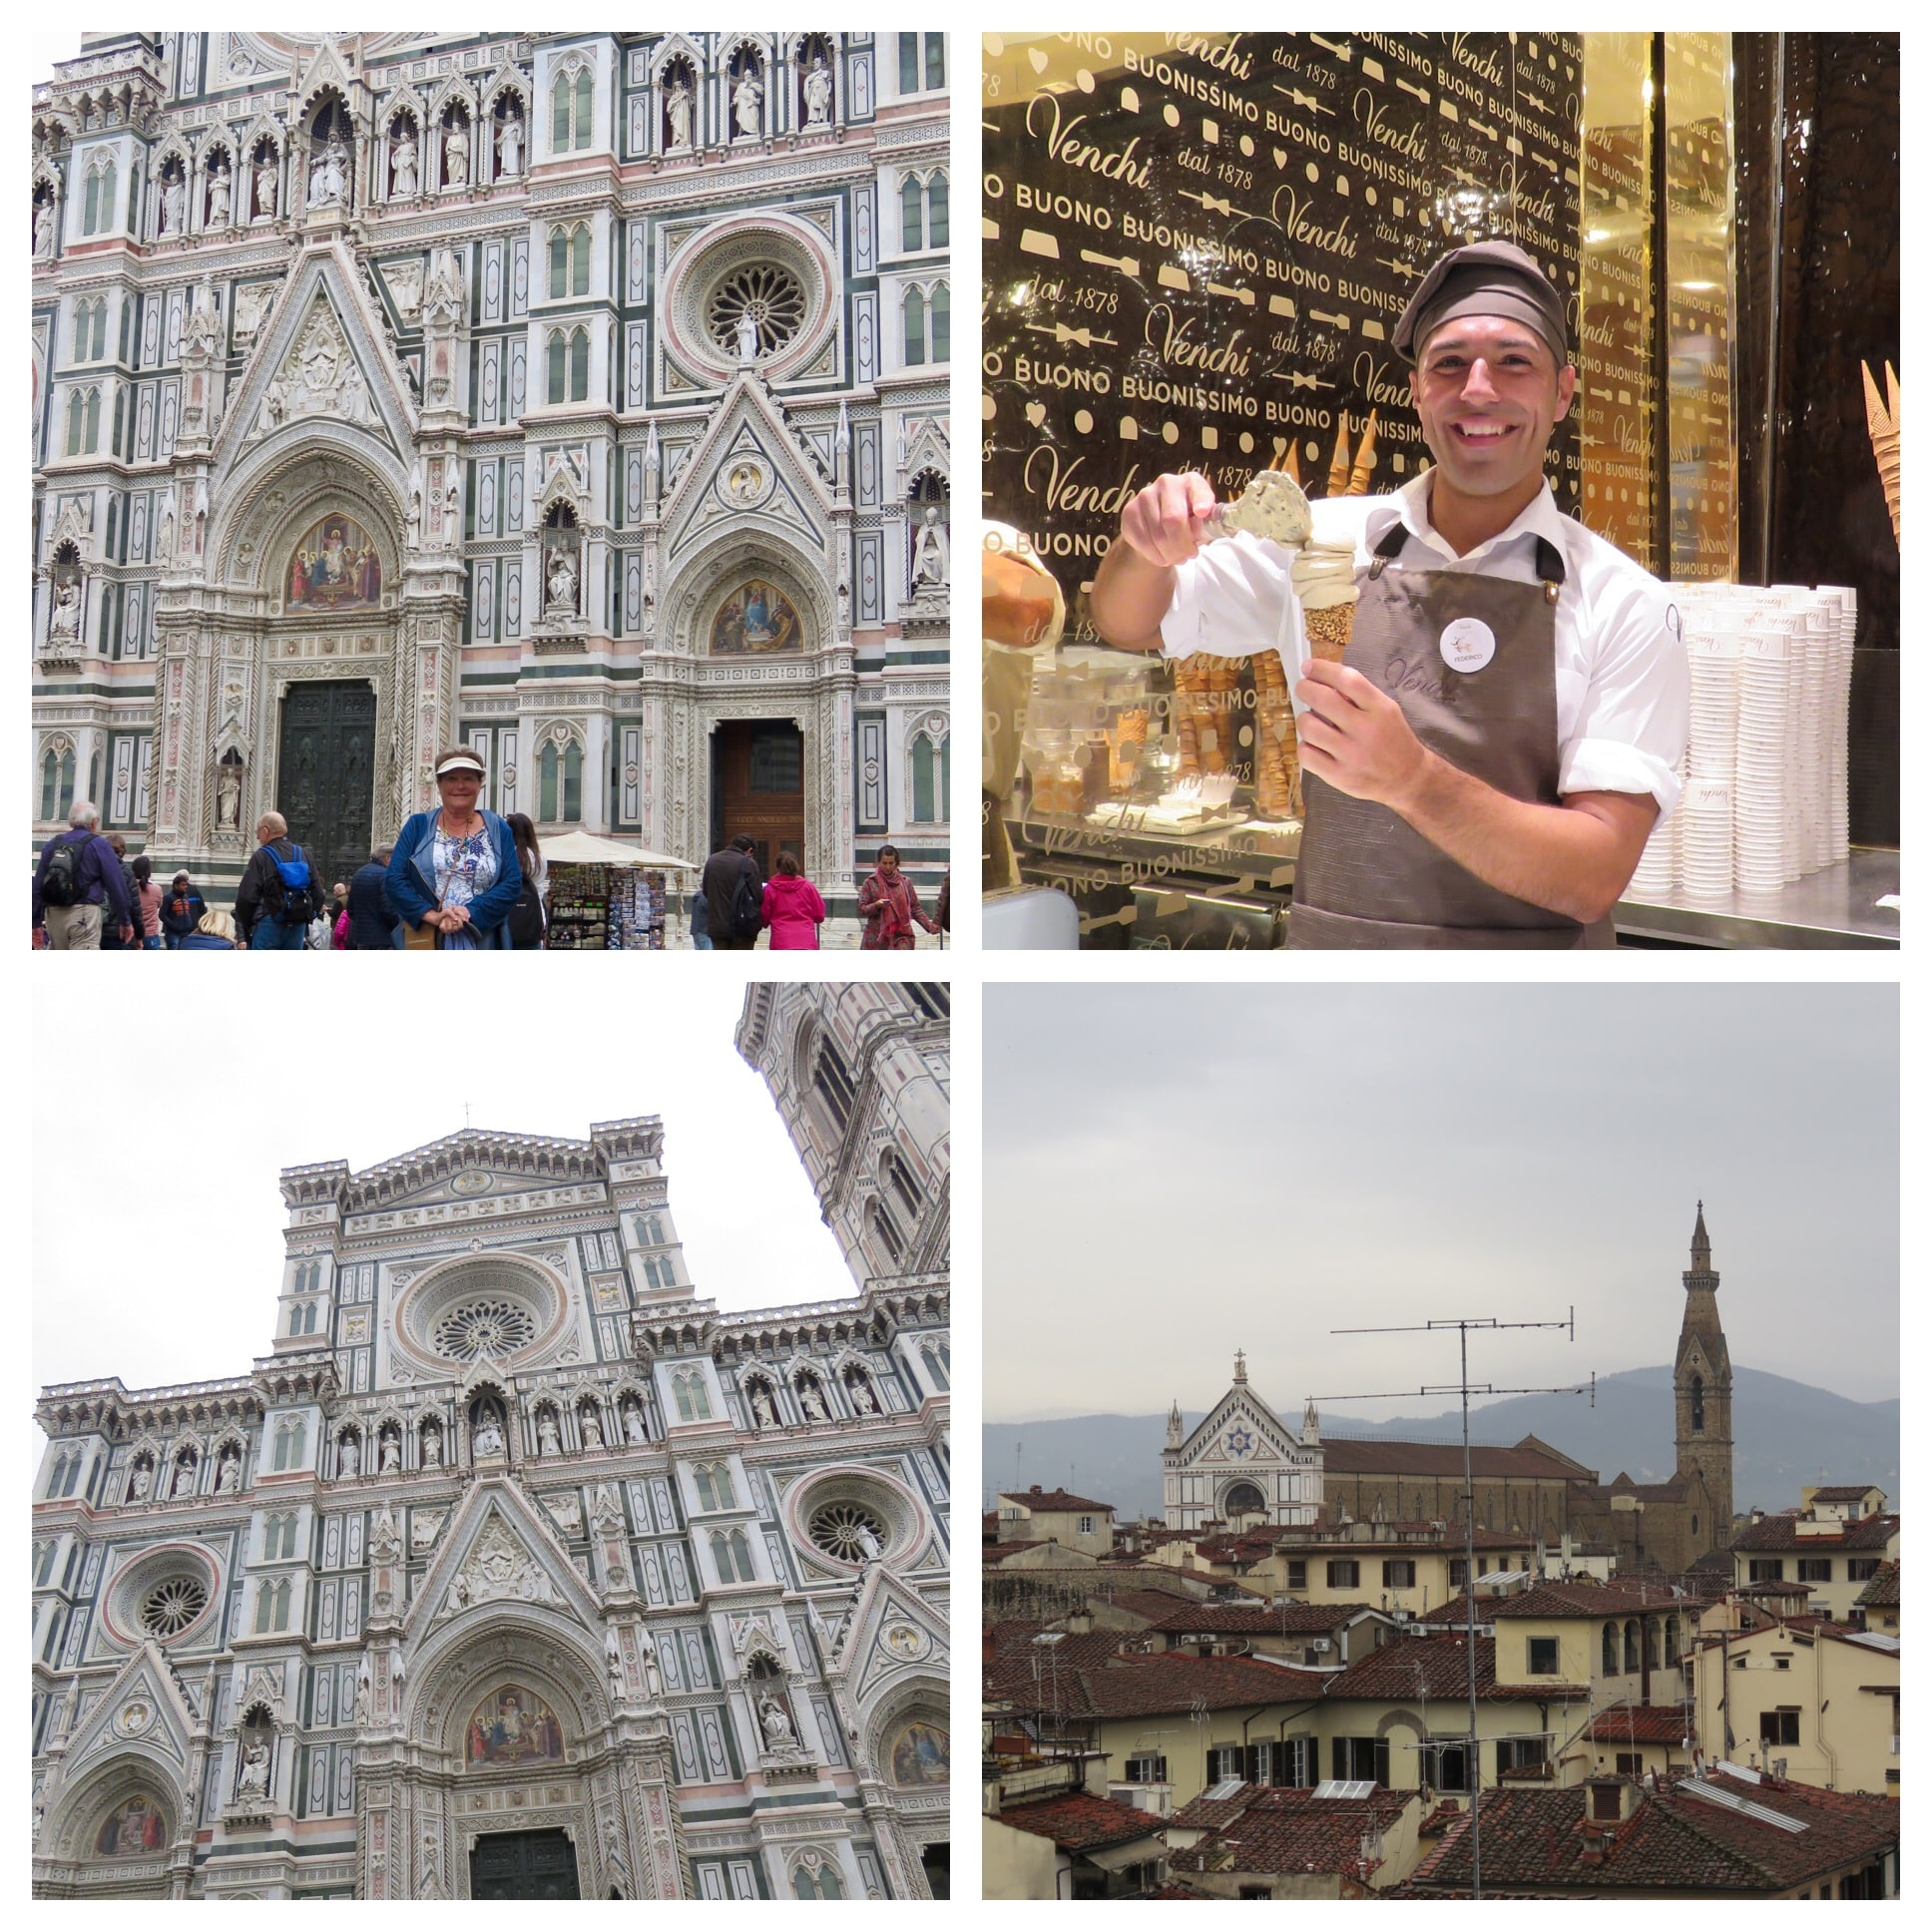 photos from our client Esther on her Italy luxury travel trip honoring her friend who passed away before the trip